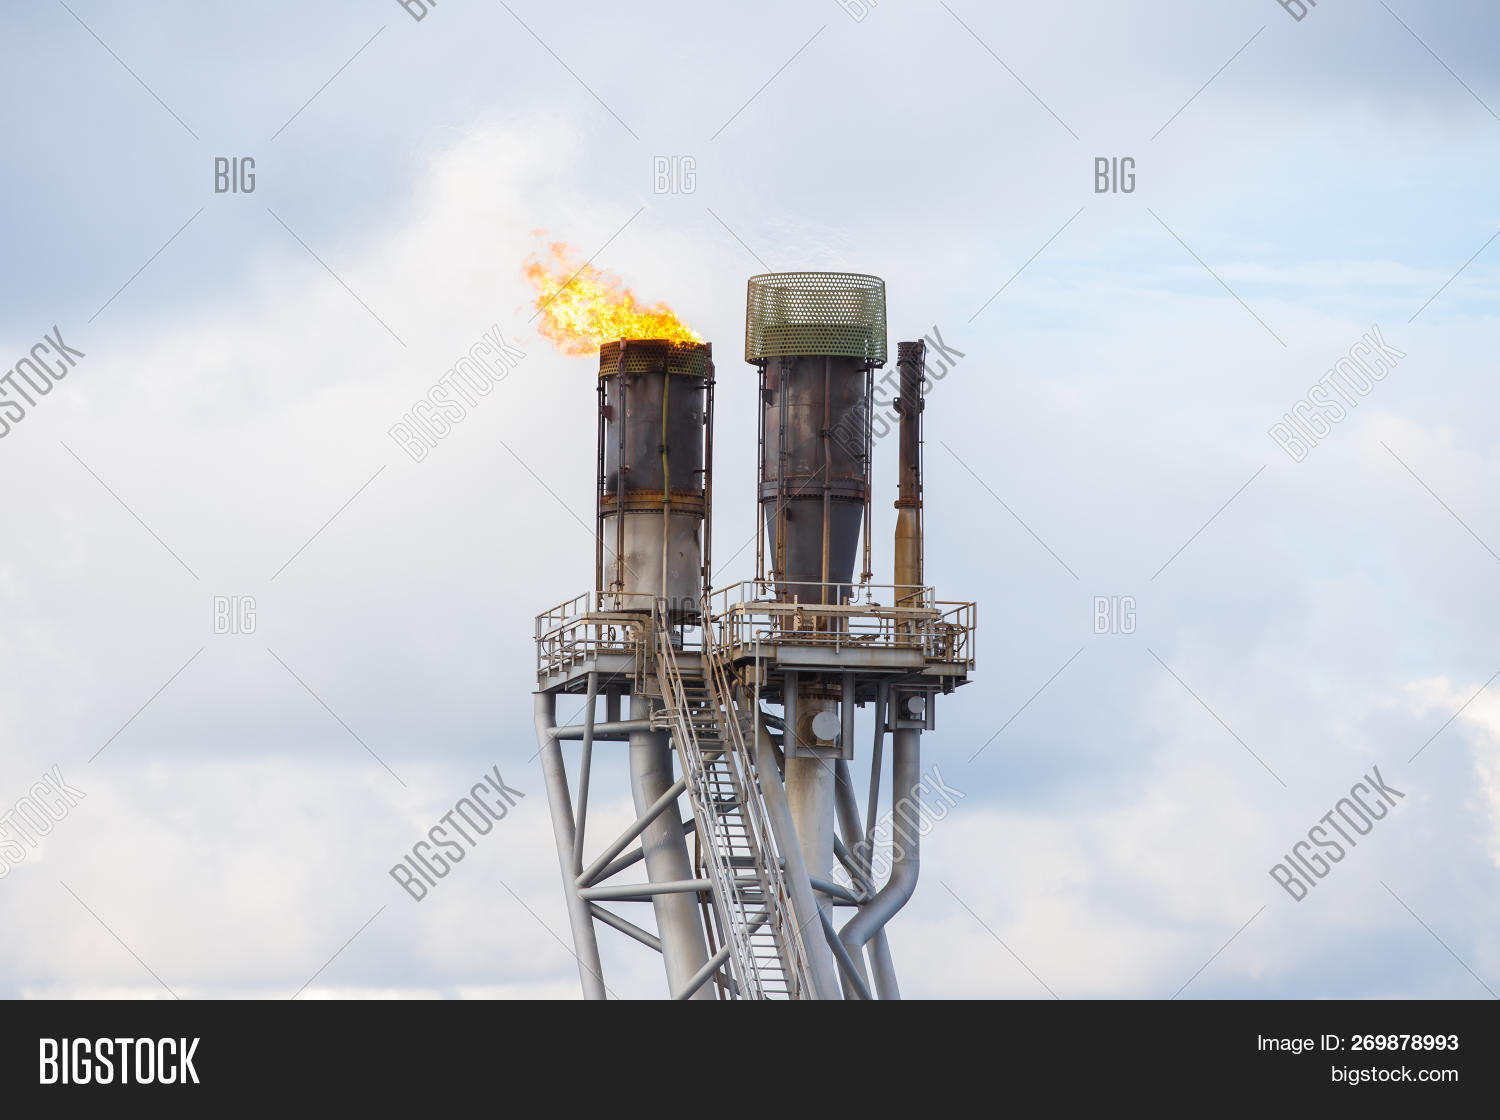 Flare Stack Oil Gas Image & Photo (Free Trial) | Bigstock